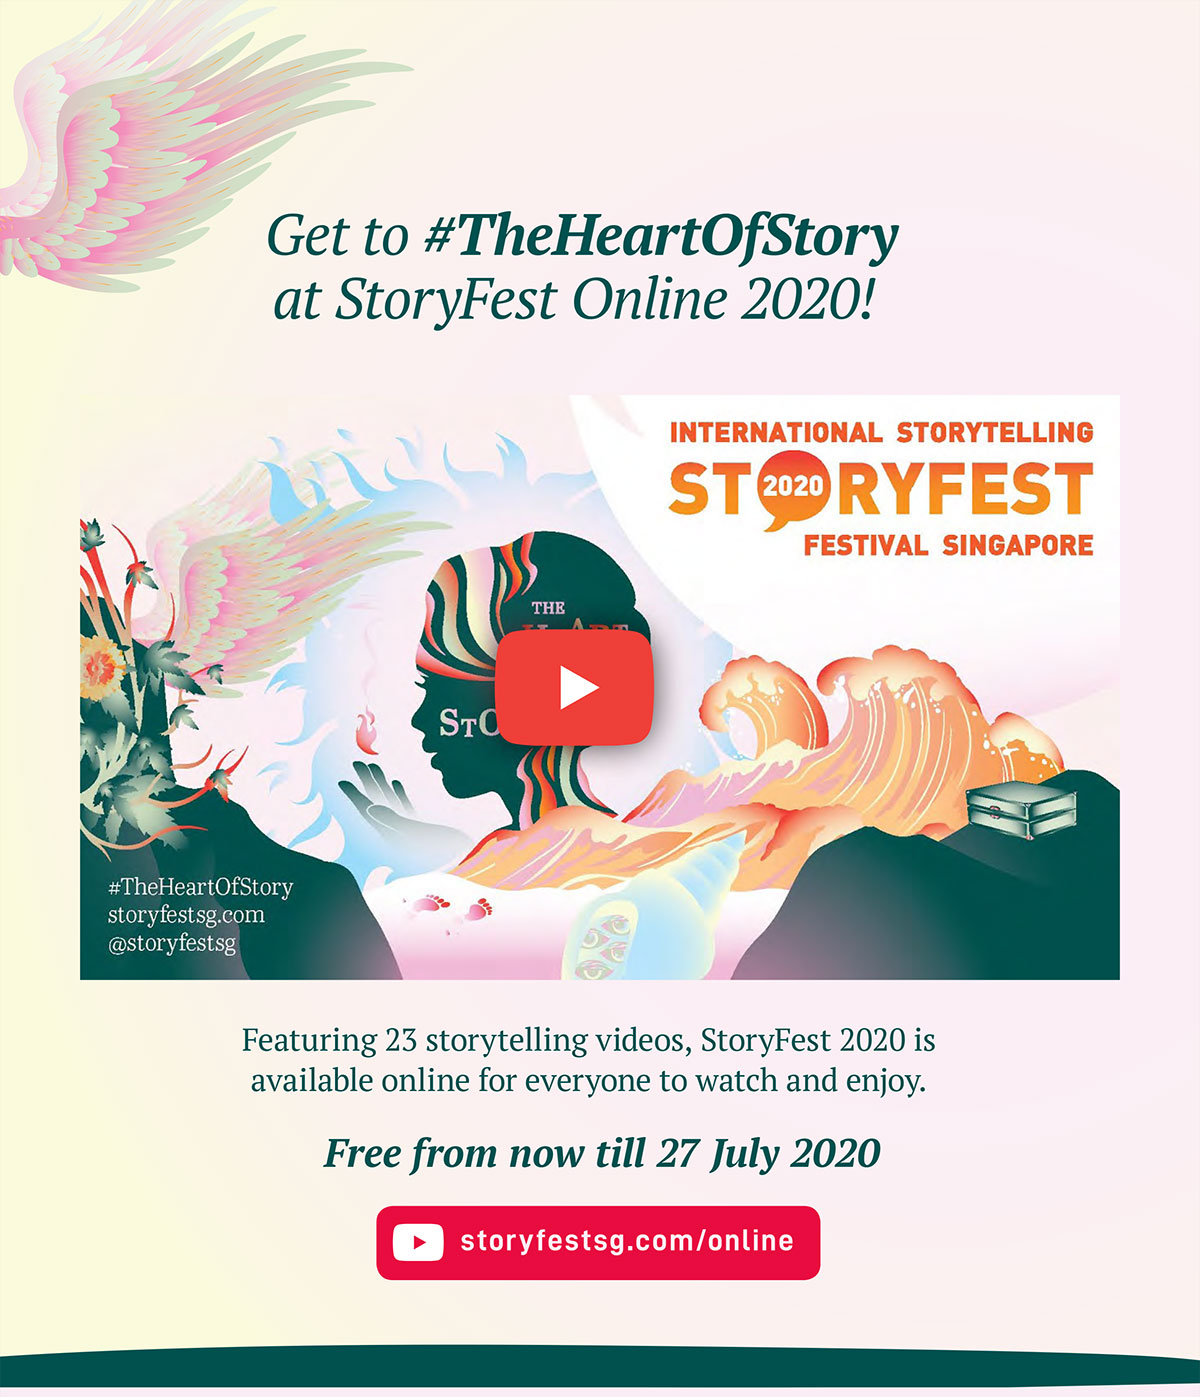 Get to #TheHeartOfStory at StoryFest Online 2020!